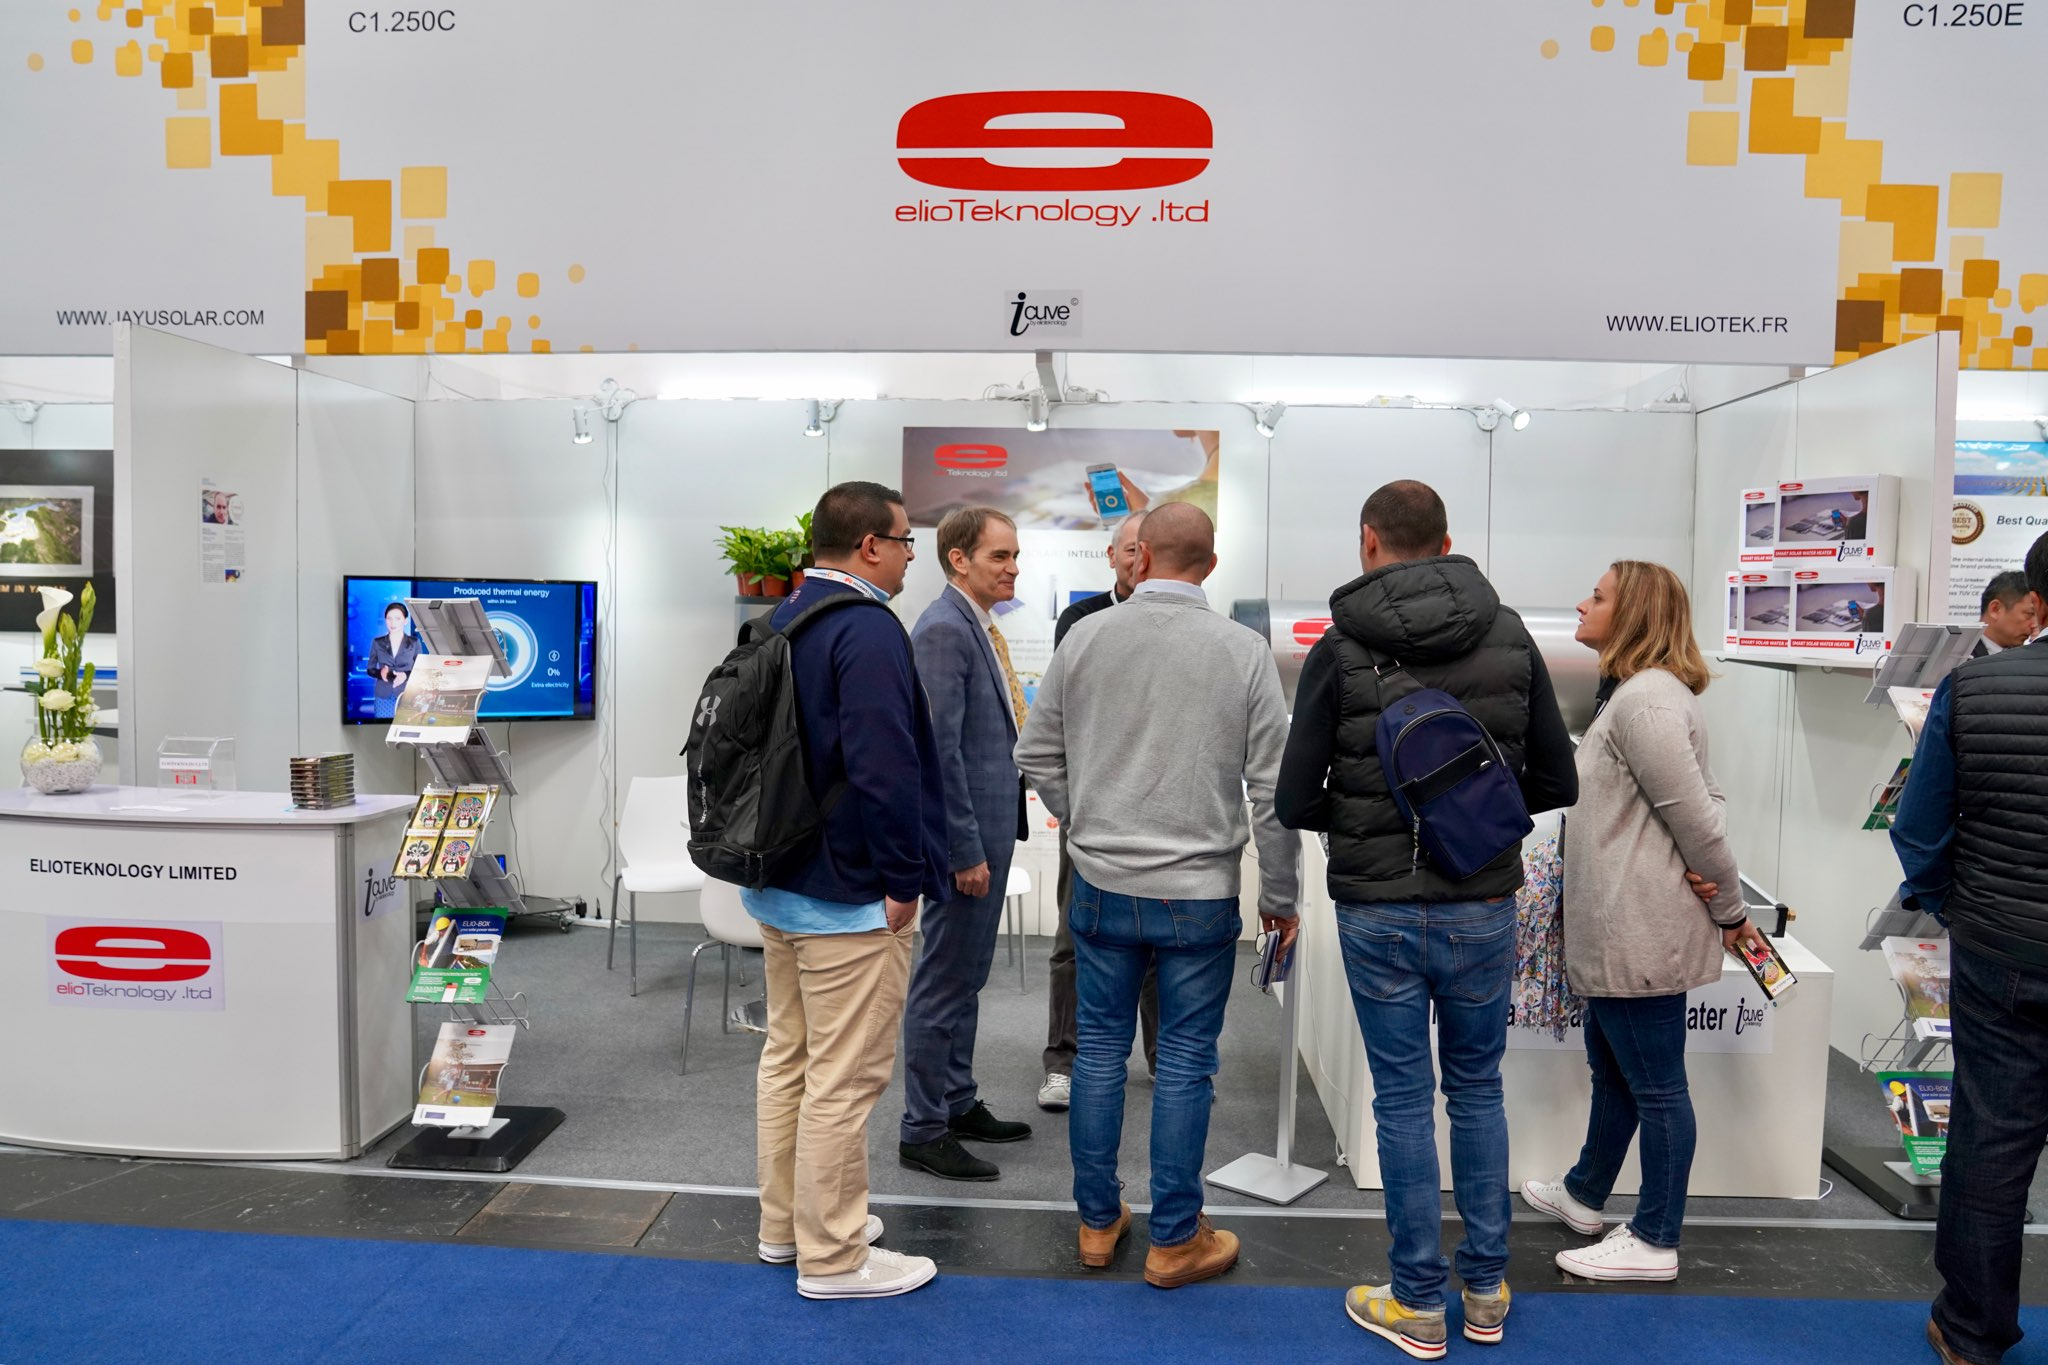 Estand de ElioTeknology en InterSolar Europa 2019